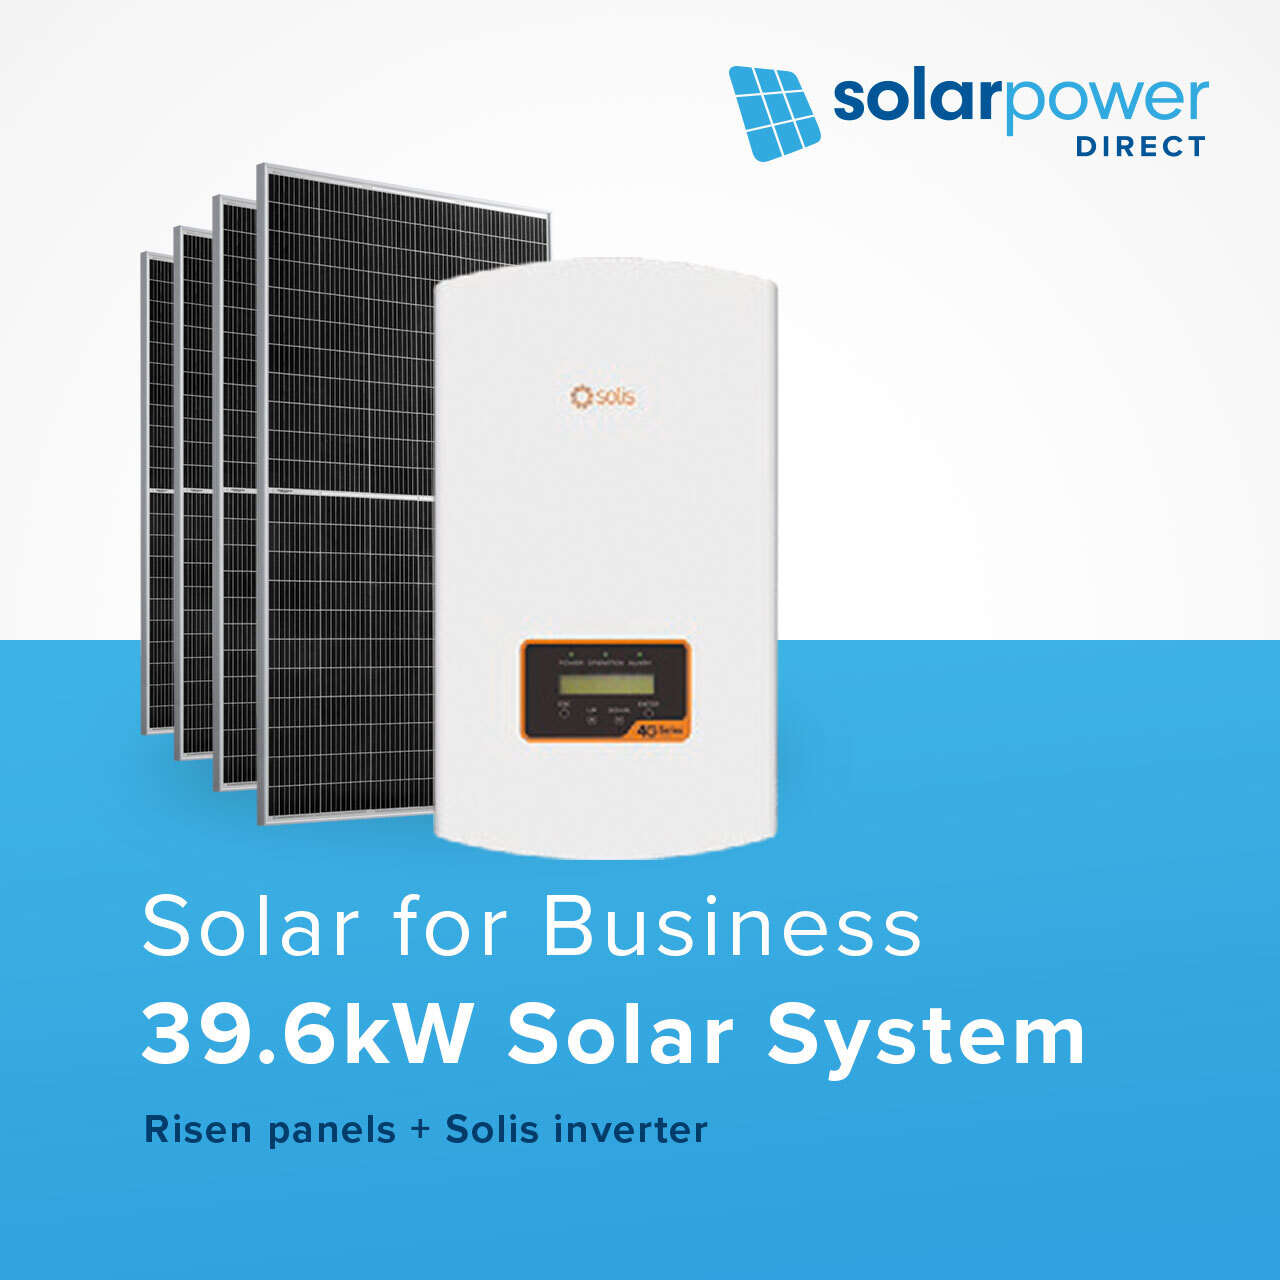 Solar for business - 39.6kW system for $15,990